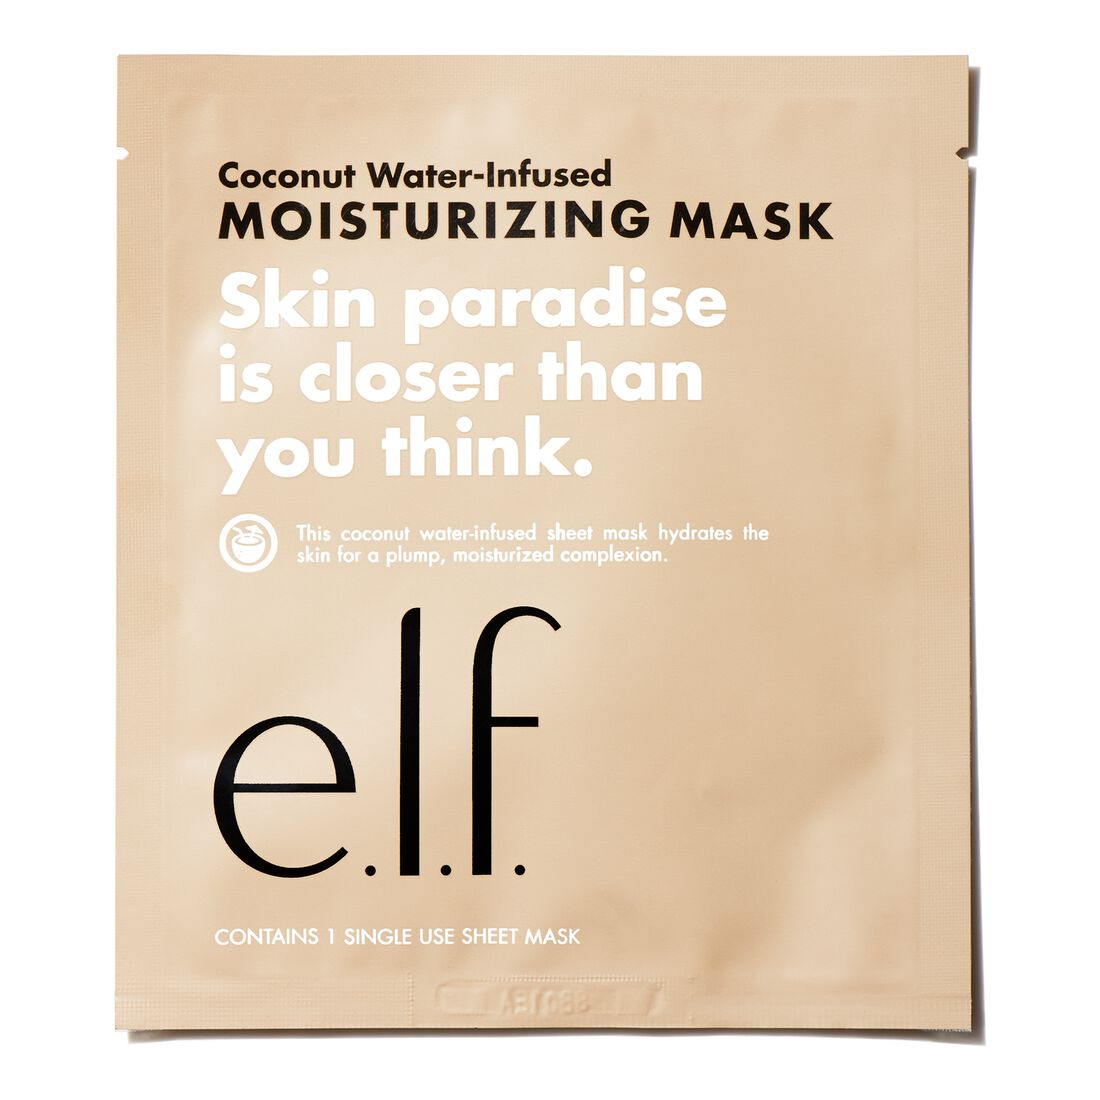 E.l.f Cosmetics - Coconut Water-Infused Moisturizing Sheet Mask